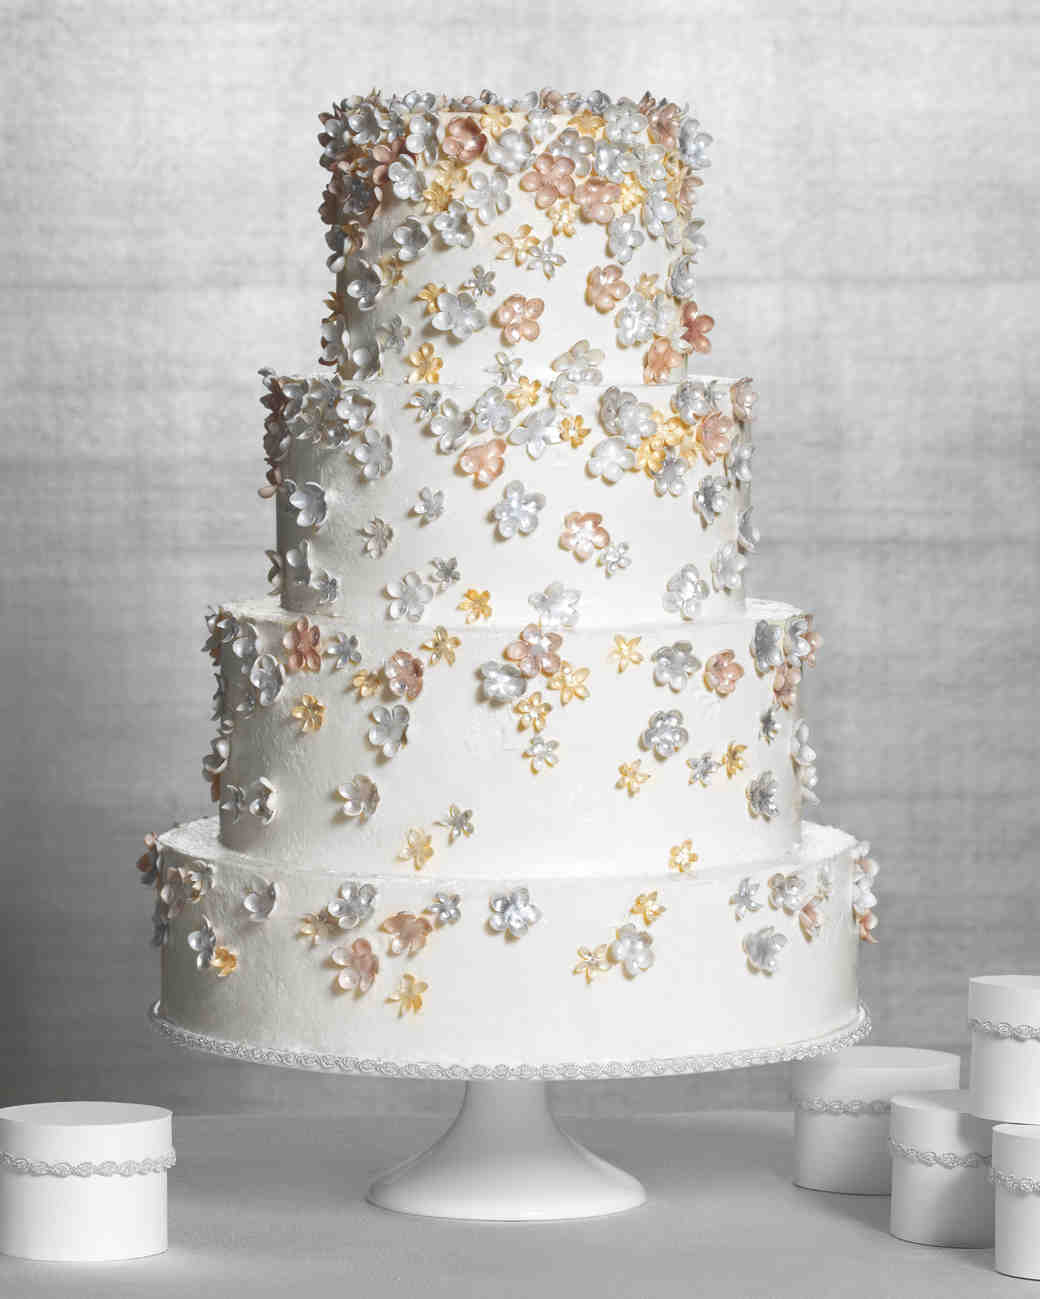 Dazzling and Delicious How to Add Sparkle to Your Cake